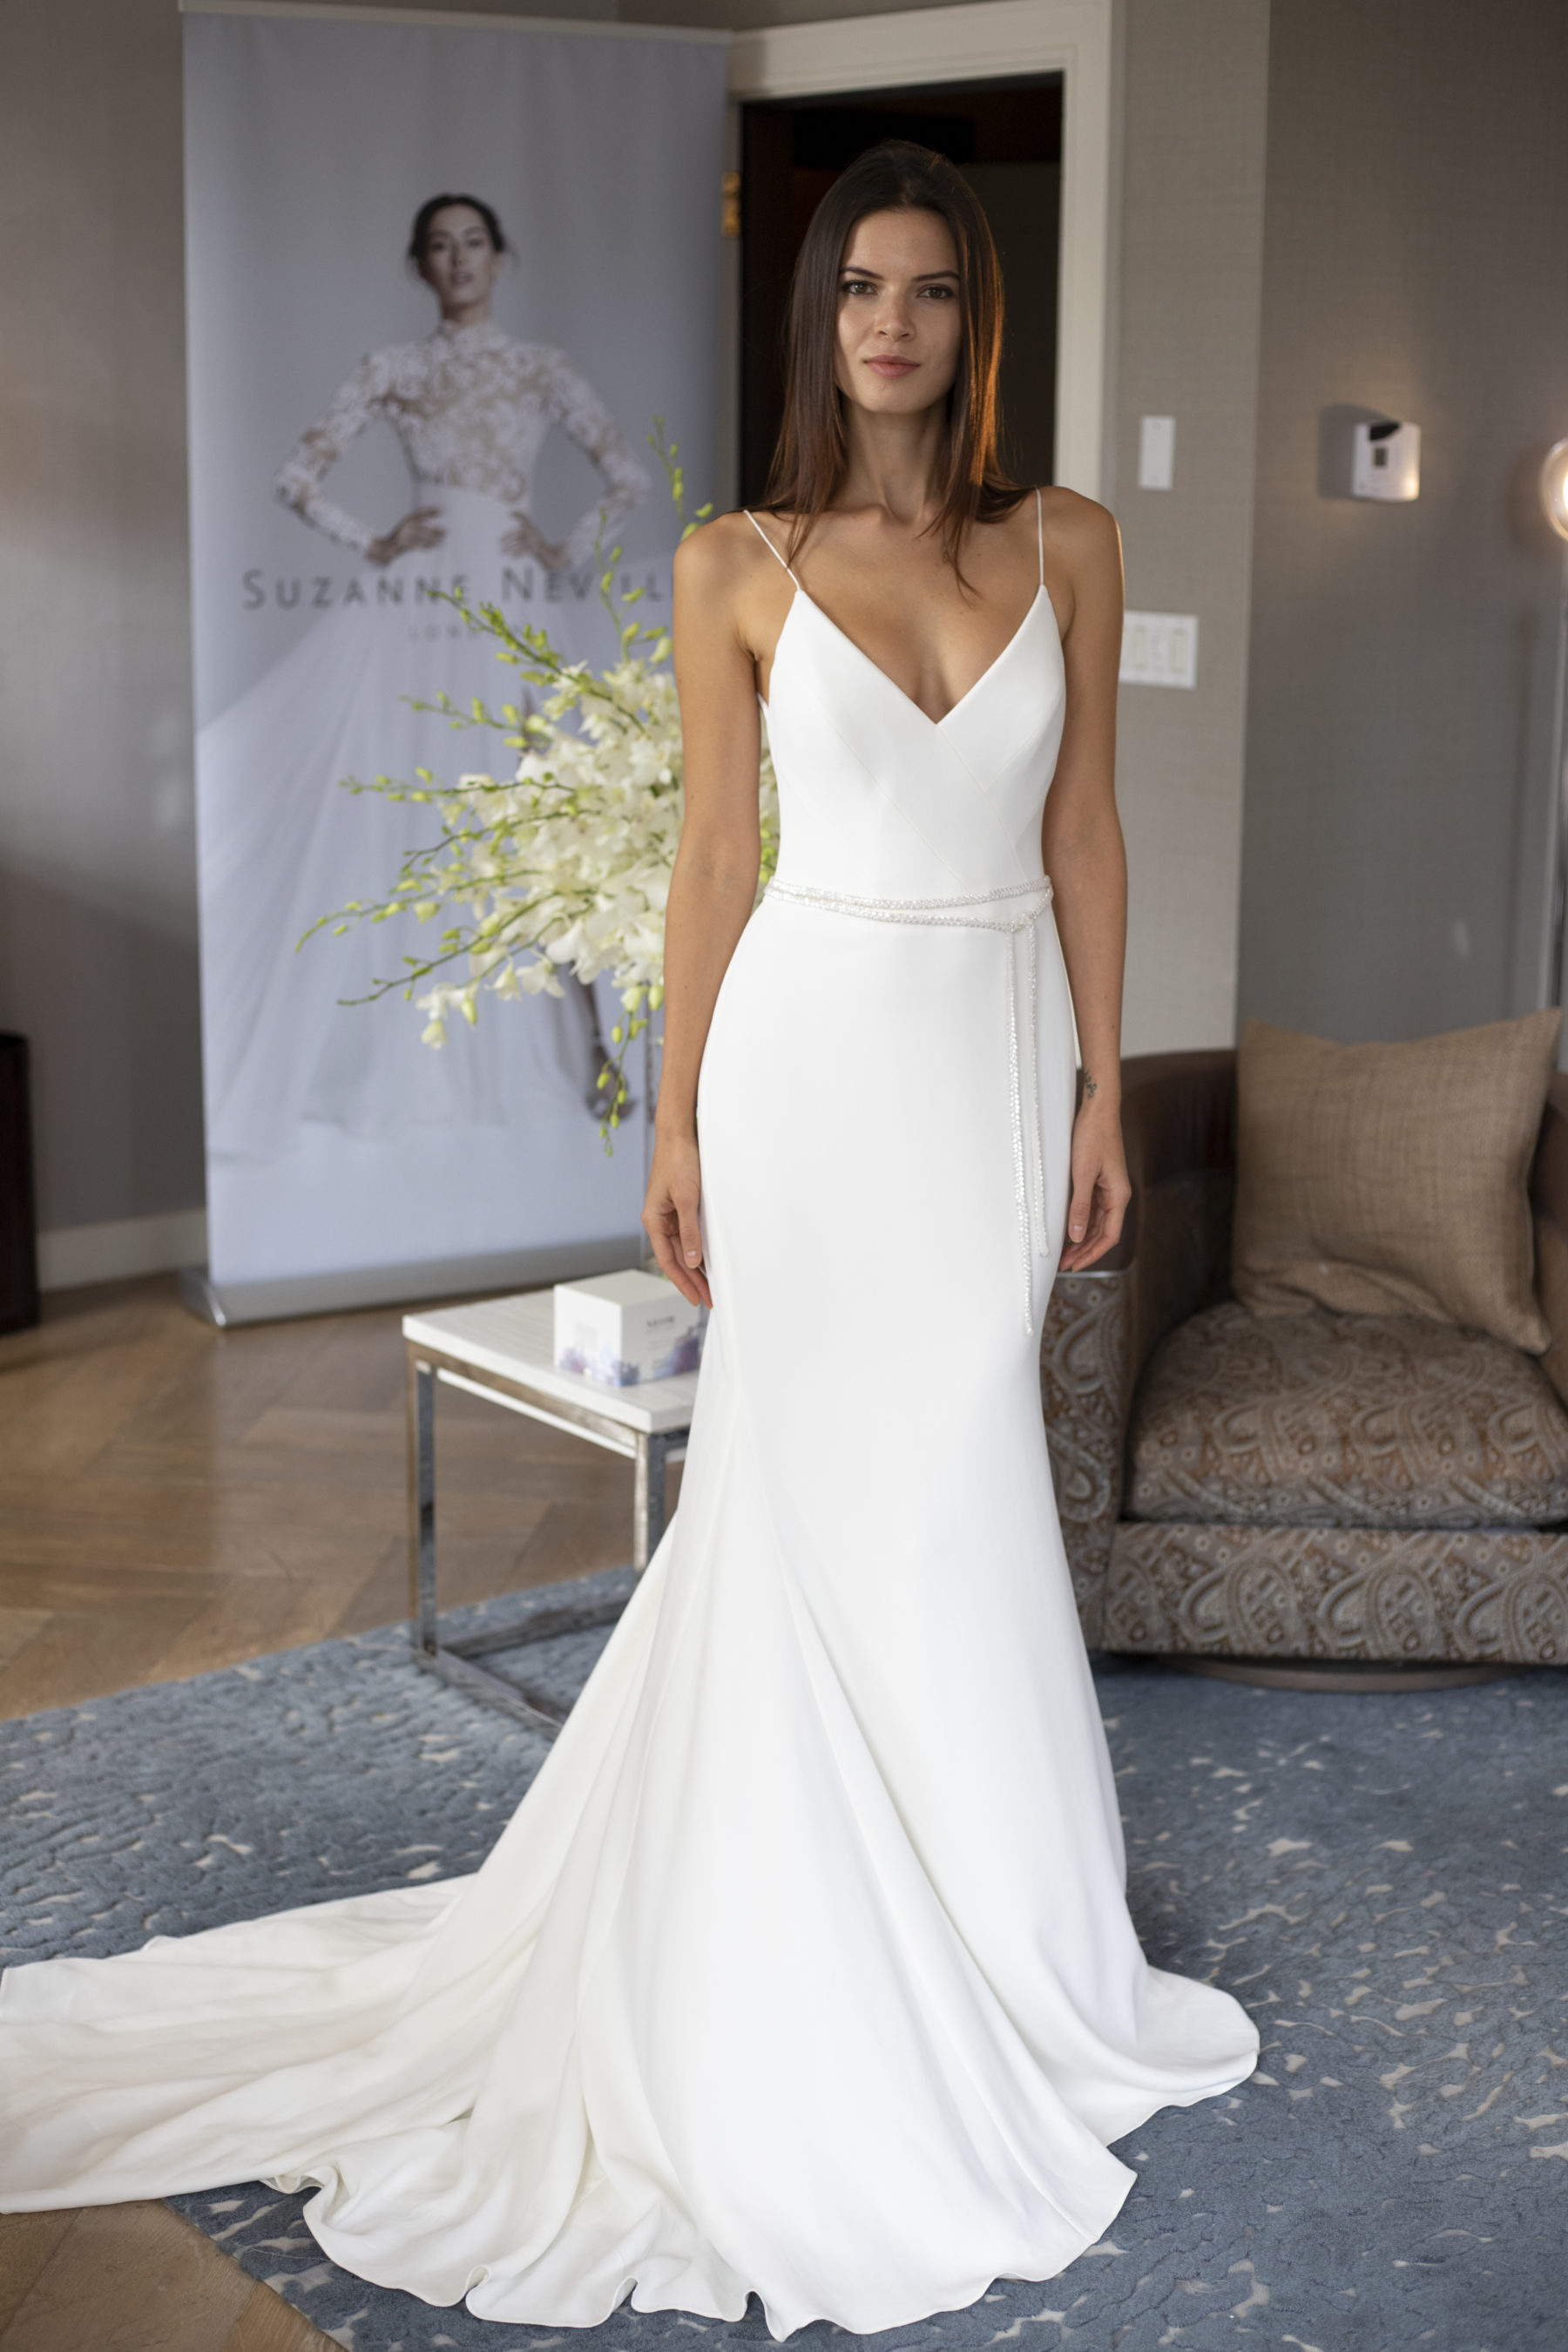 Elegant Suzanne Neville gown for New York Bridal Fashion Week: Fall 2019 Trends